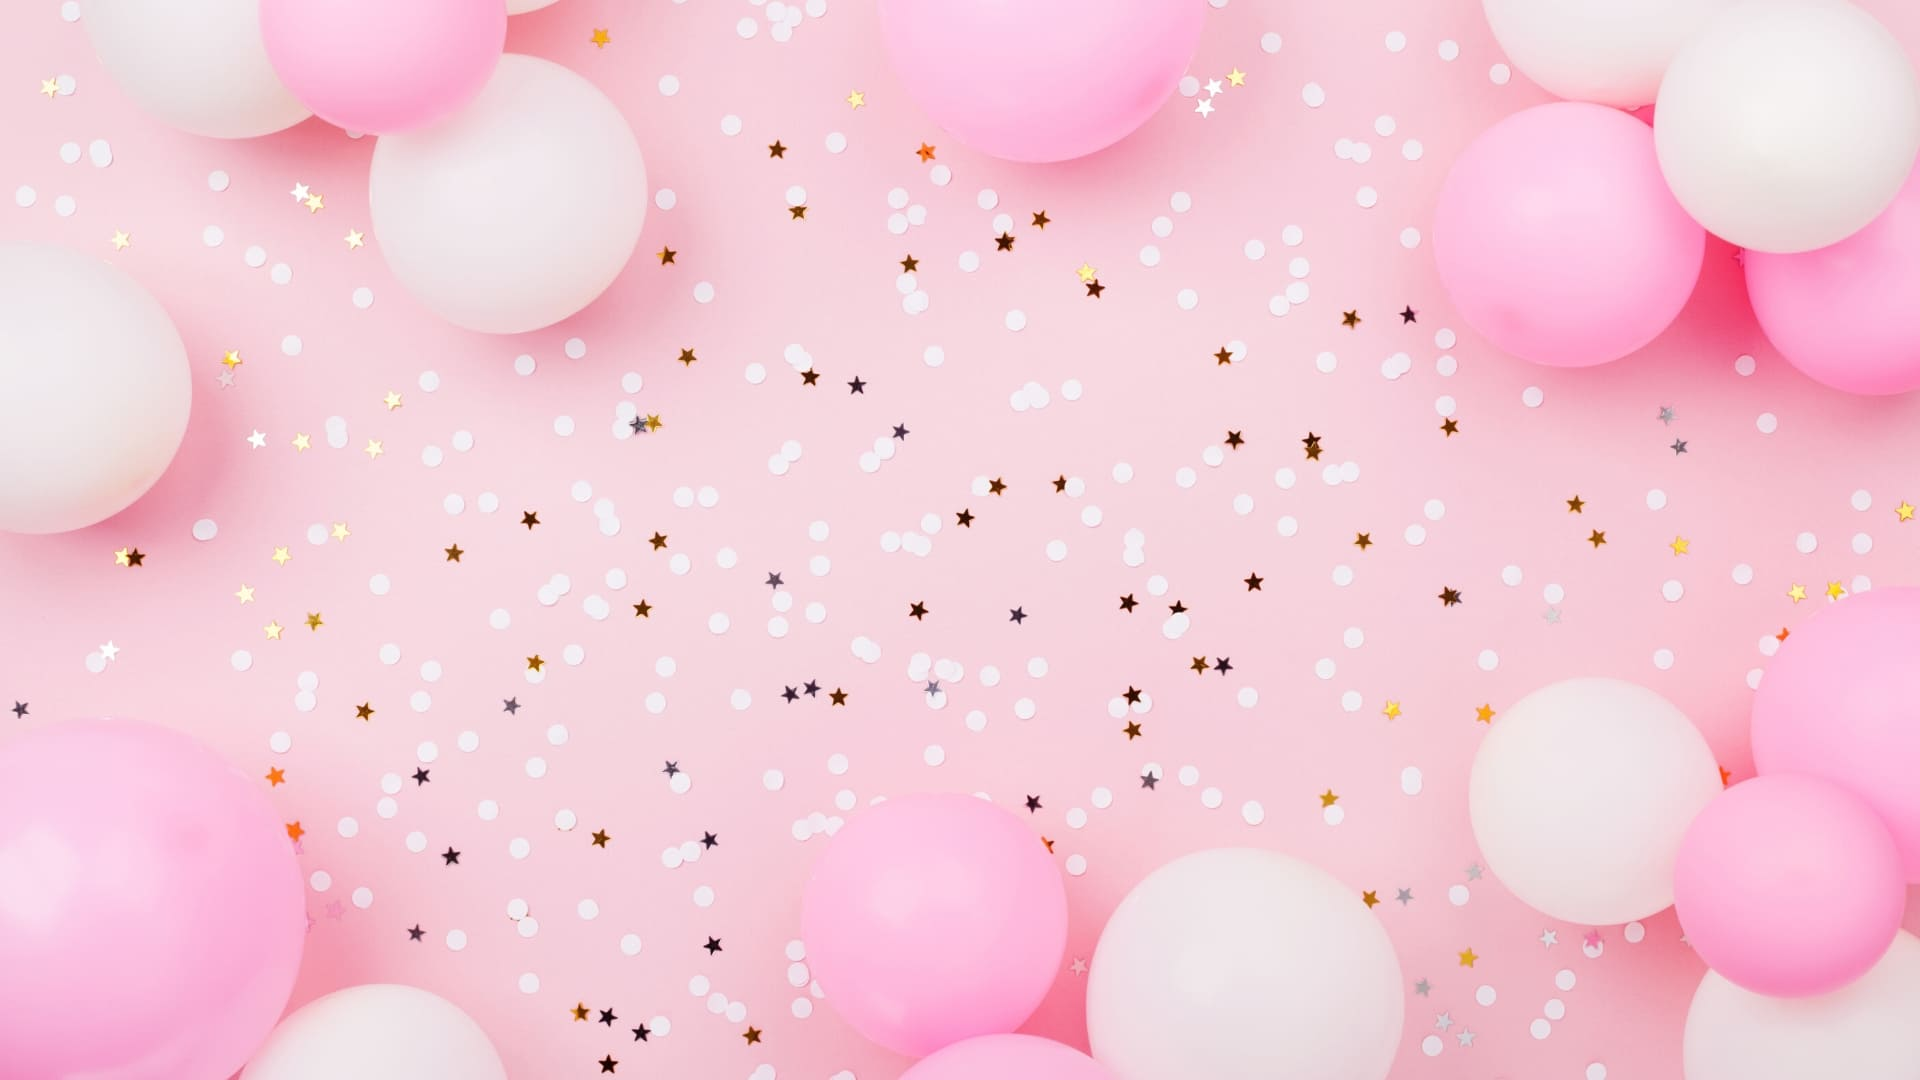 Birthday Background   Top Free Birthday Wallpaper   20wallpapers